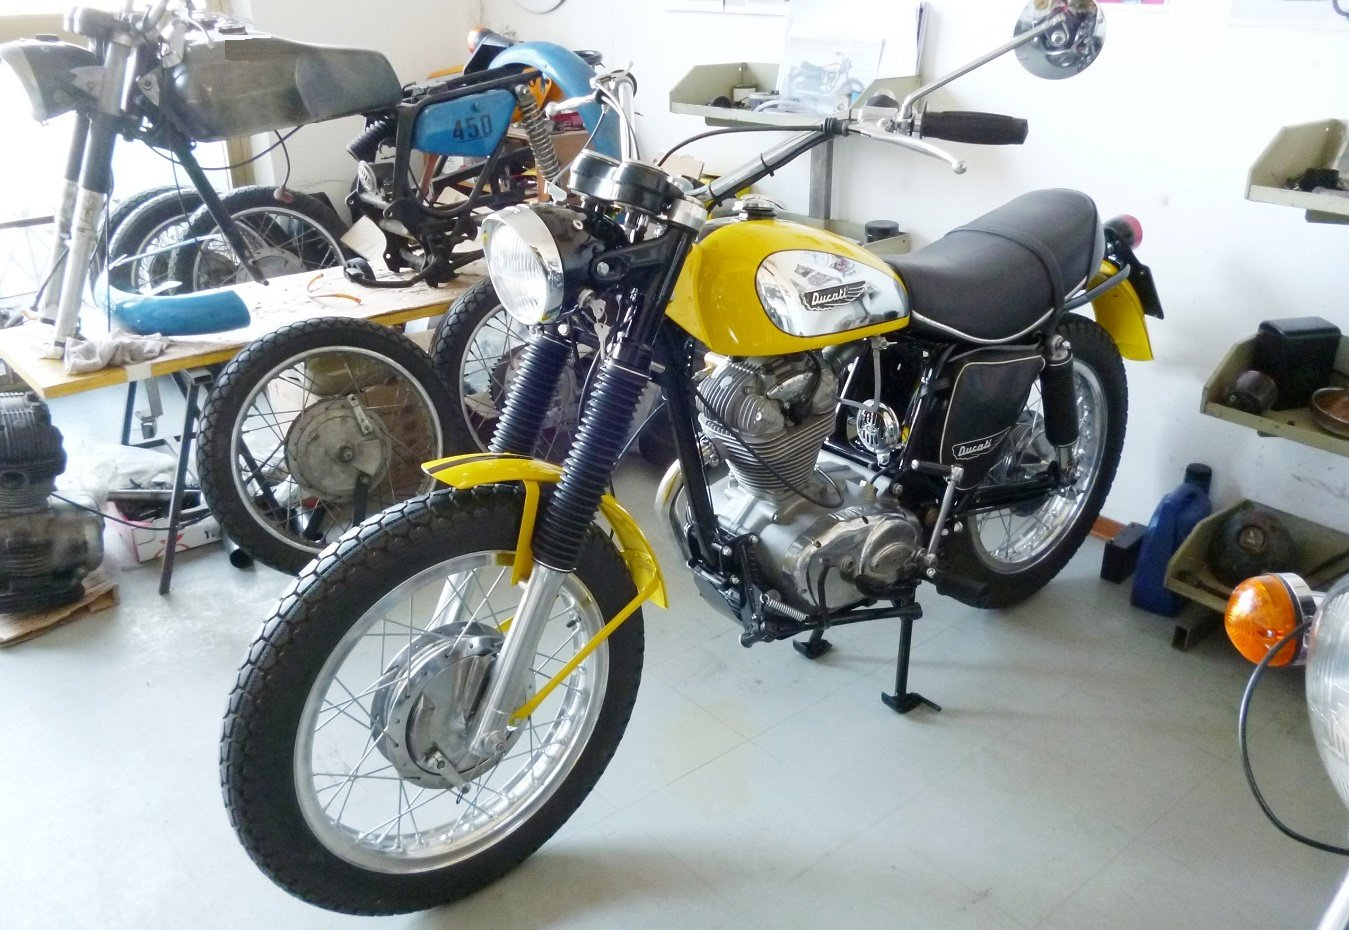 1974 Ducati 250 Scrambler low mileage For Sale (picture 4 of 6)